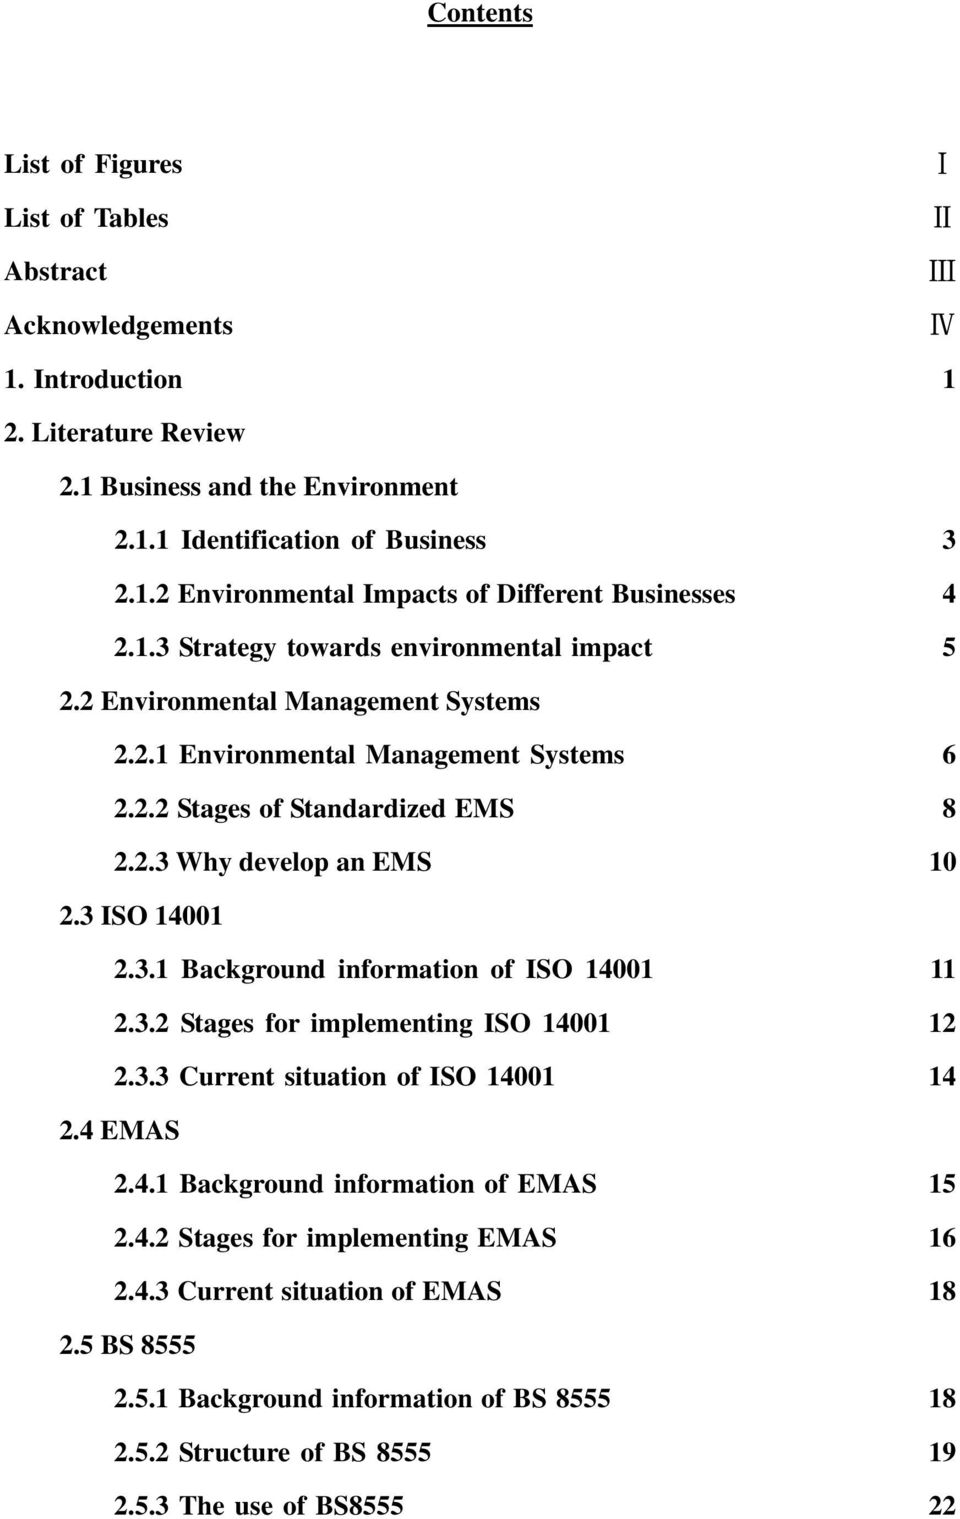 3 ISO 14001 2.3.1 Background information of ISO 14001 11 2.3.2 Stages for implementing ISO 14001 12 2.3.3 Current situation of ISO 14001 14 2.4 EMAS 2.4.1 Background information of EMAS 15 2.4.2 Stages for implementing EMAS 16 2.